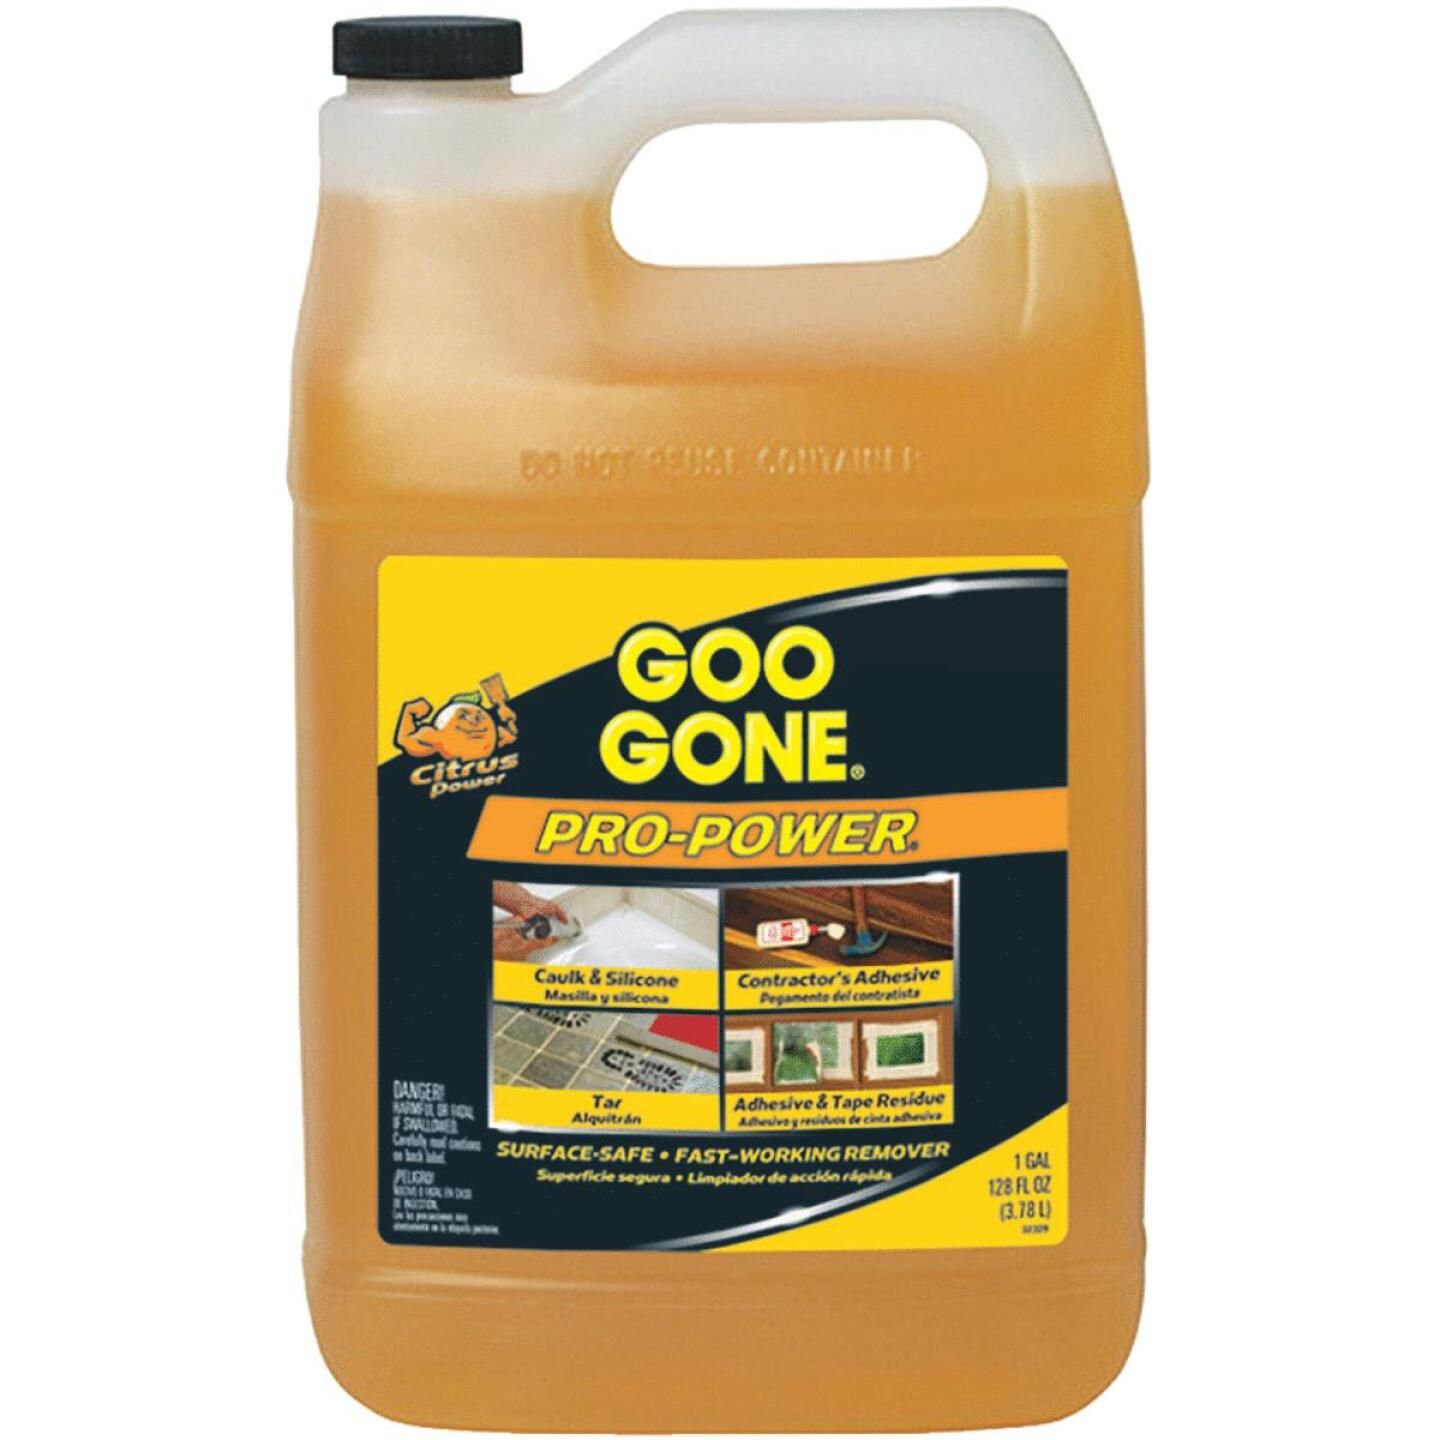 Goo Gone 1 Gal. Pro-Power Adhesive Remover Image 97